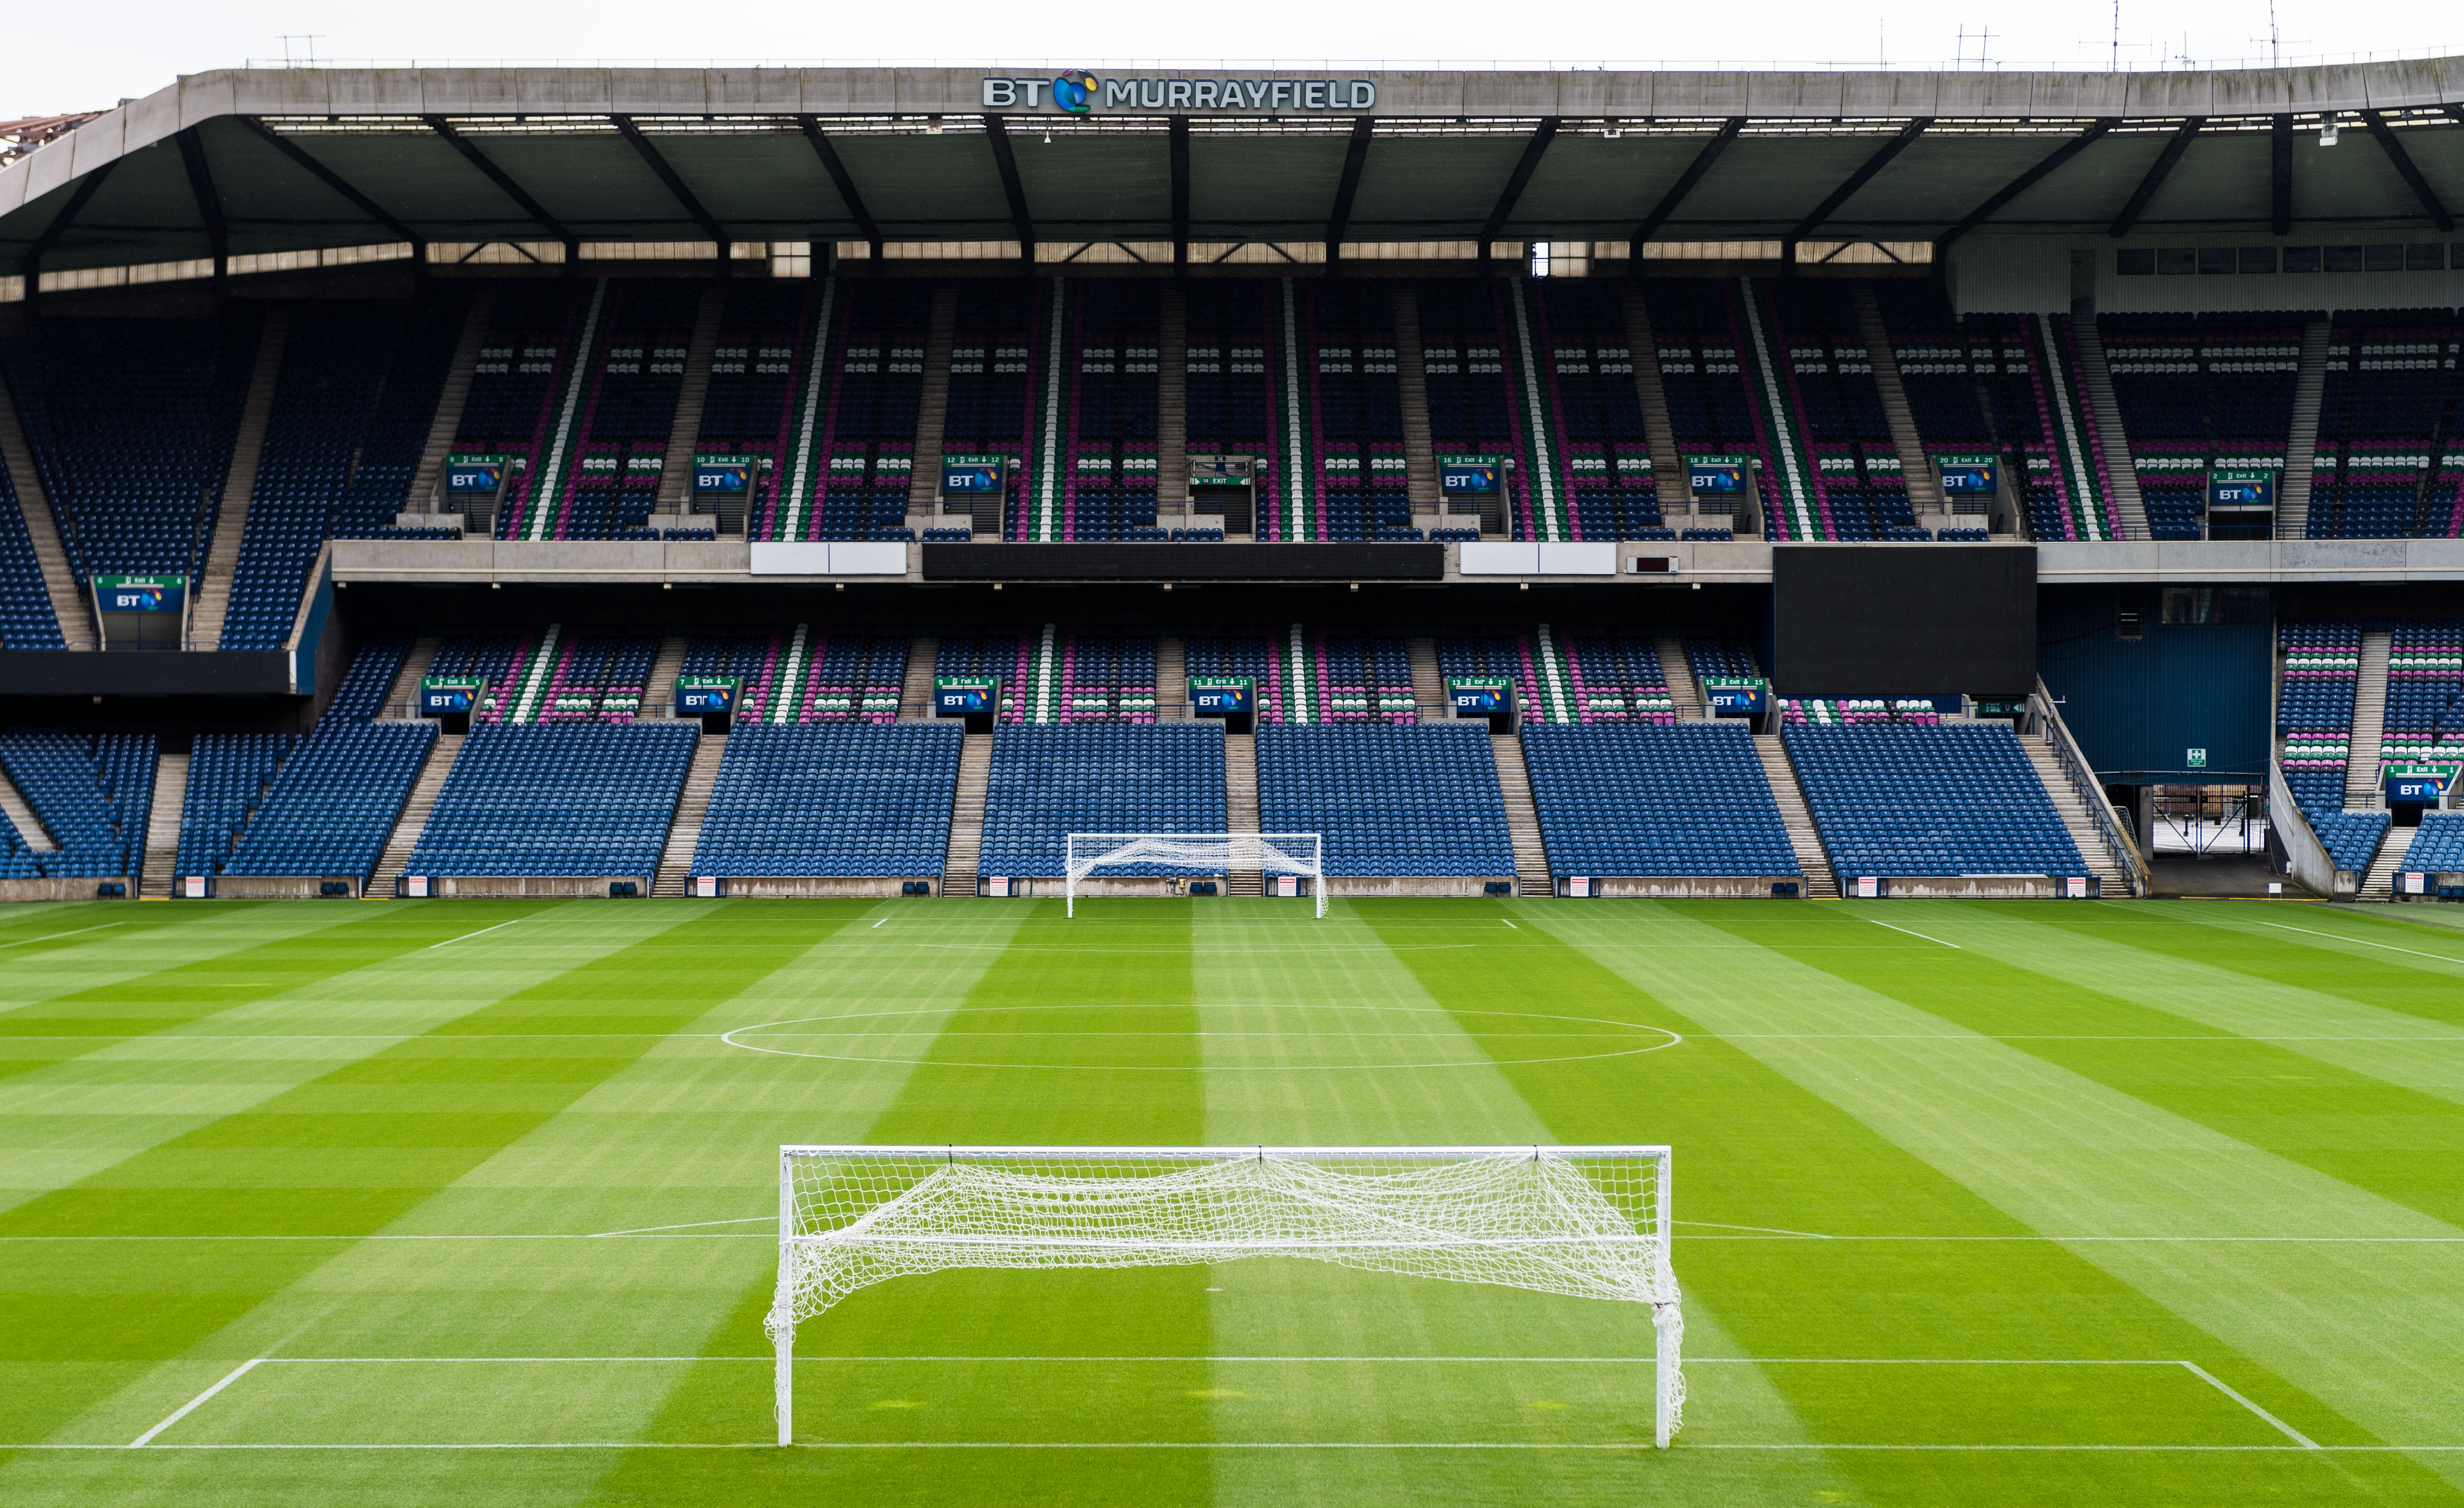 Murrayfield Stadium will host the Hearts-Celtic League Cup semi-final